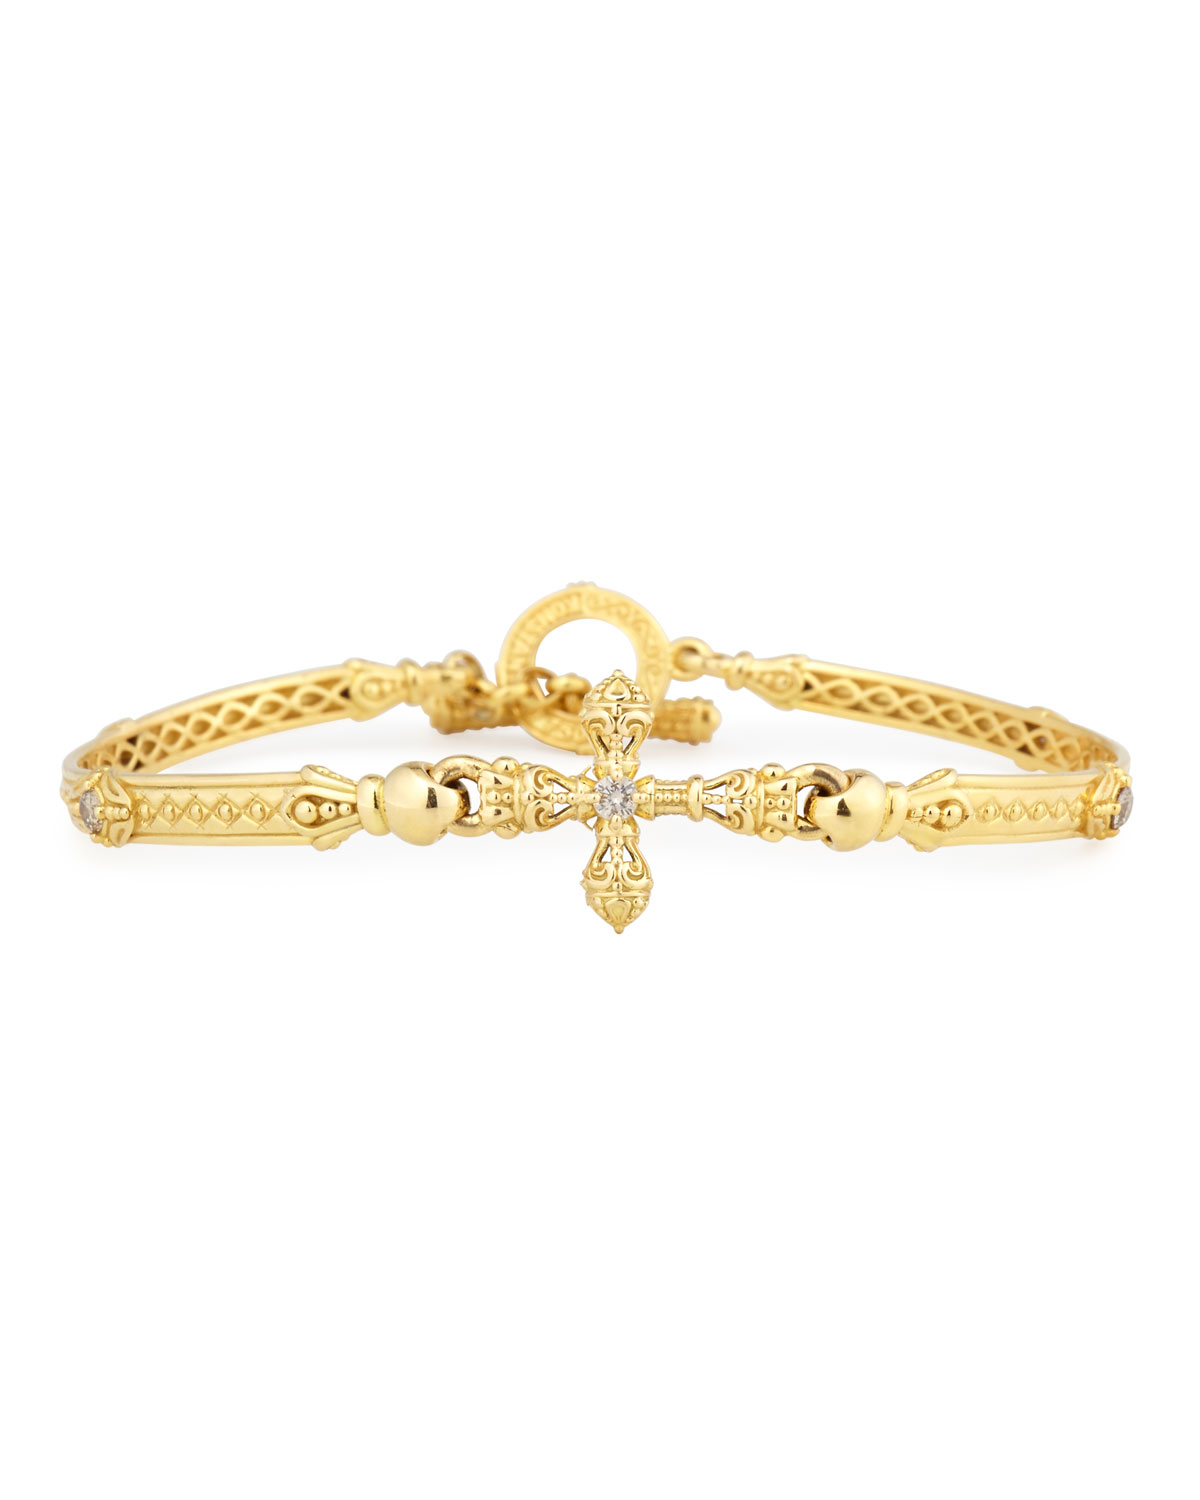 Konstantino Flamenco Cross Station Bracelet with Diamonds